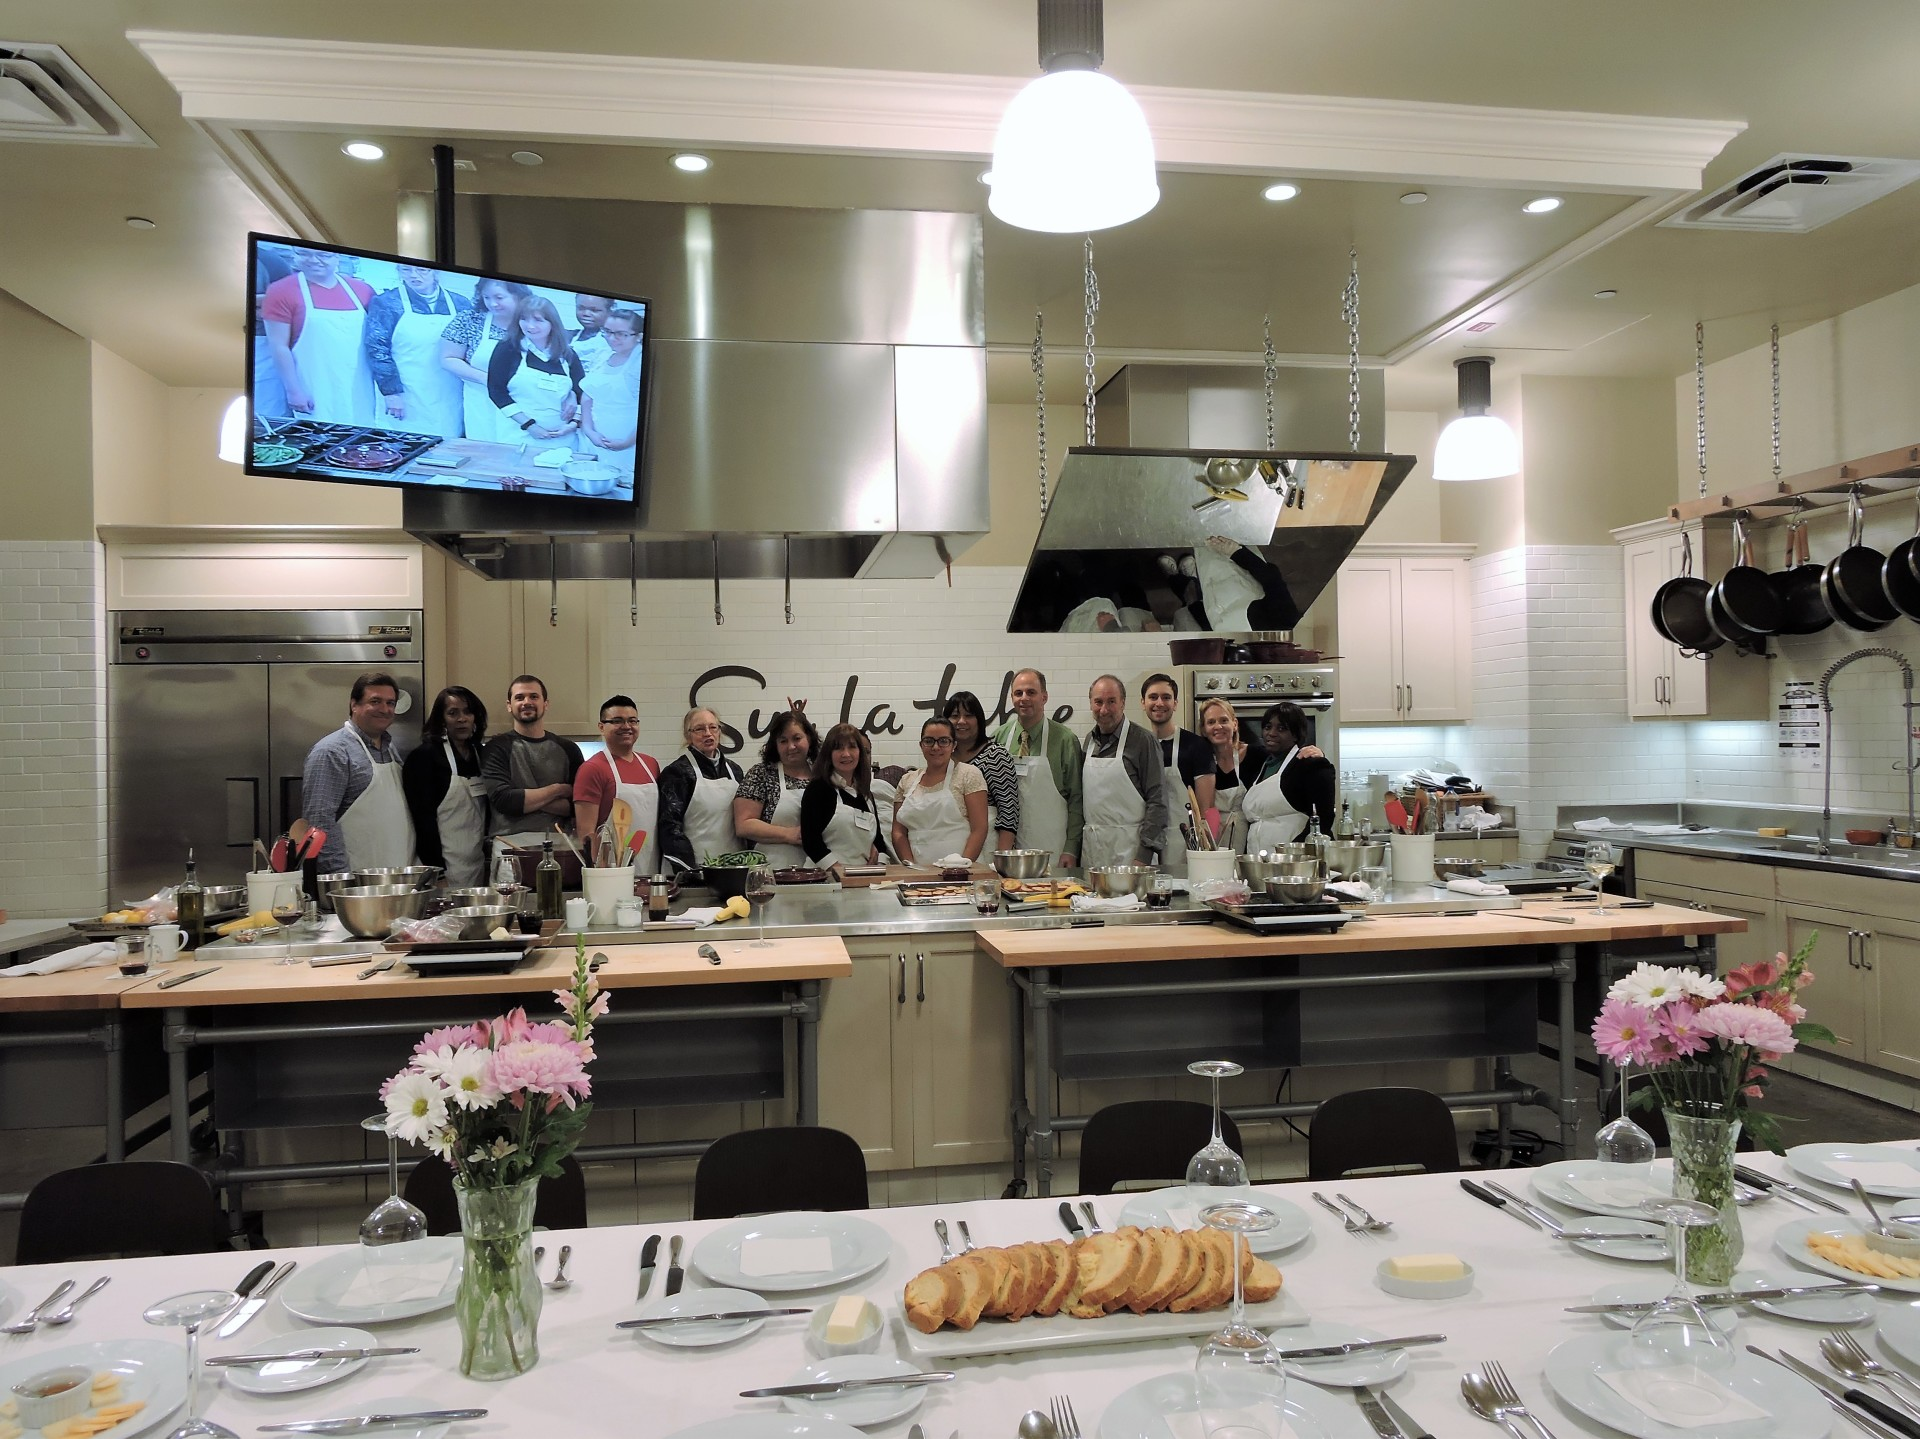 Our 25th Anniversary - Cooking Class outing